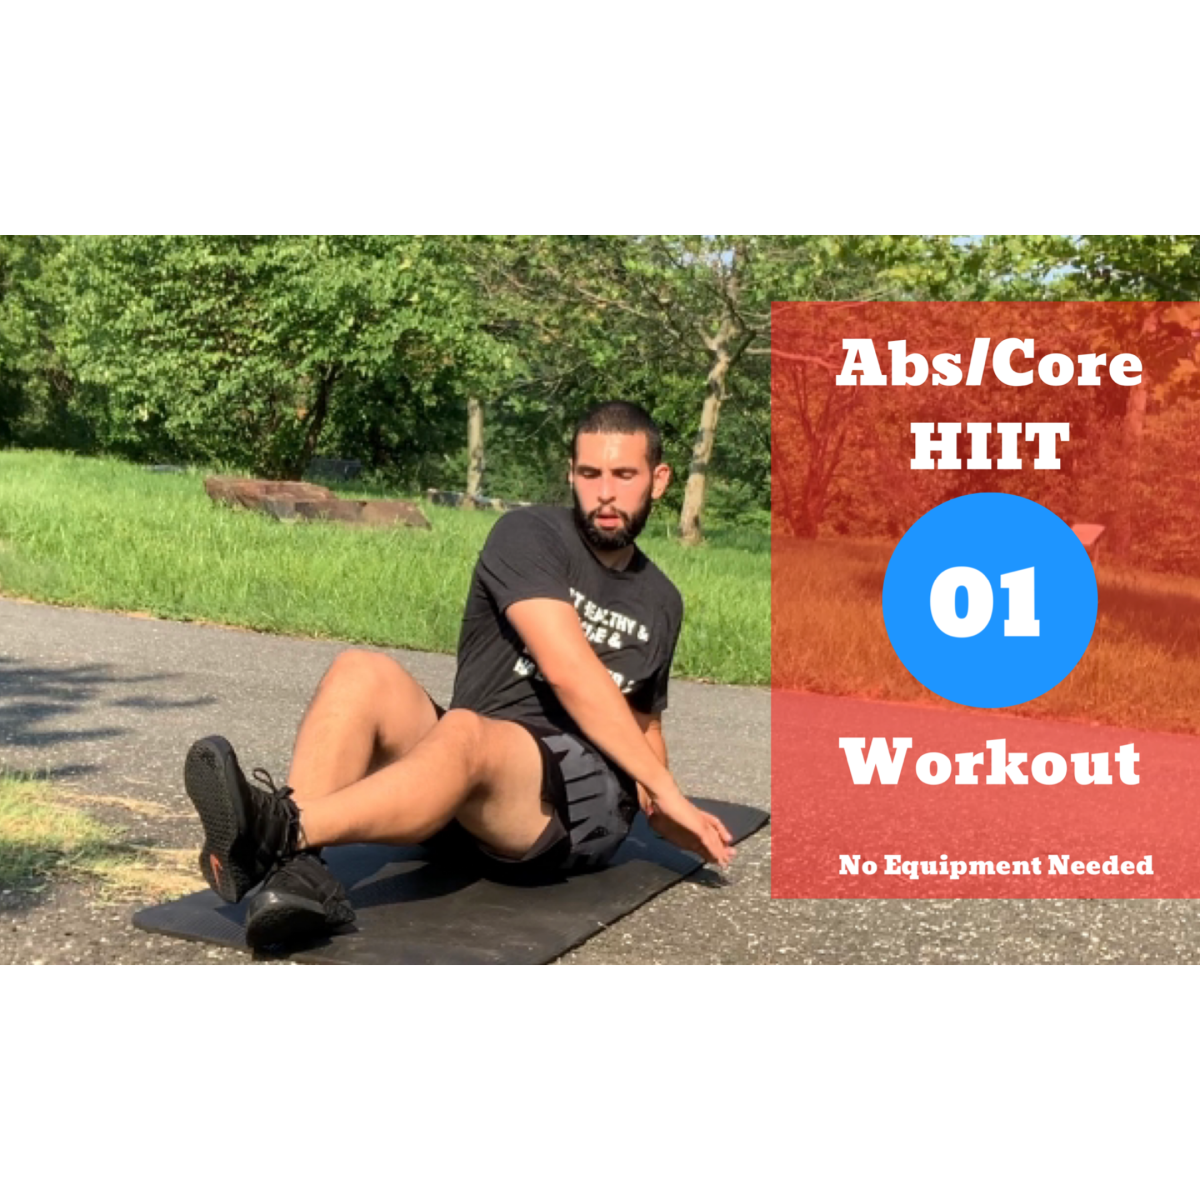 Abs / Core HIIT Workout 01